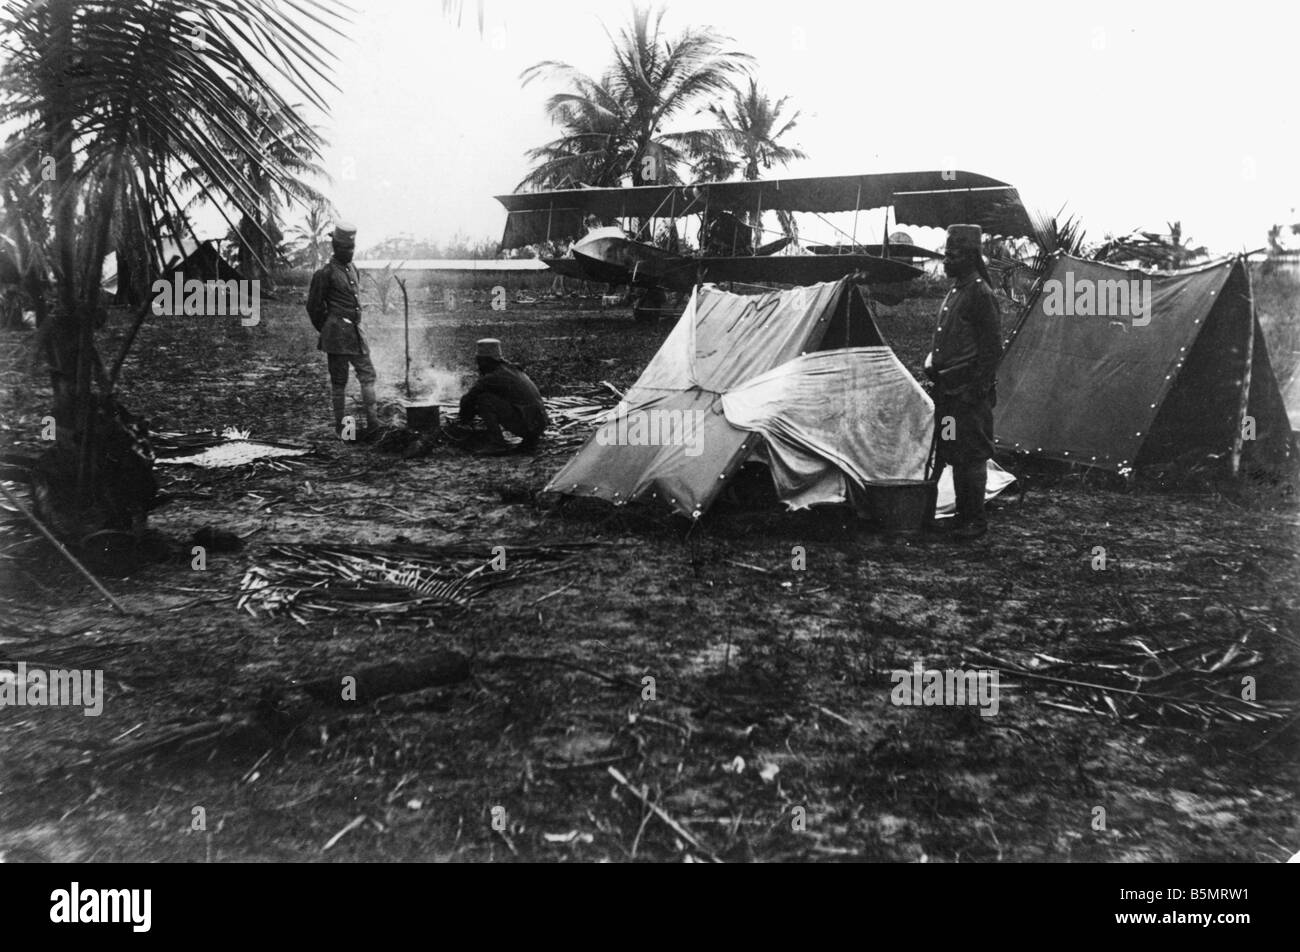 9AF 1914 0 0 A5 2 Askaris by tents Ger East Africa World War 1 War in the colonies German East Africa now Tanzania Native auxili Stock Photo